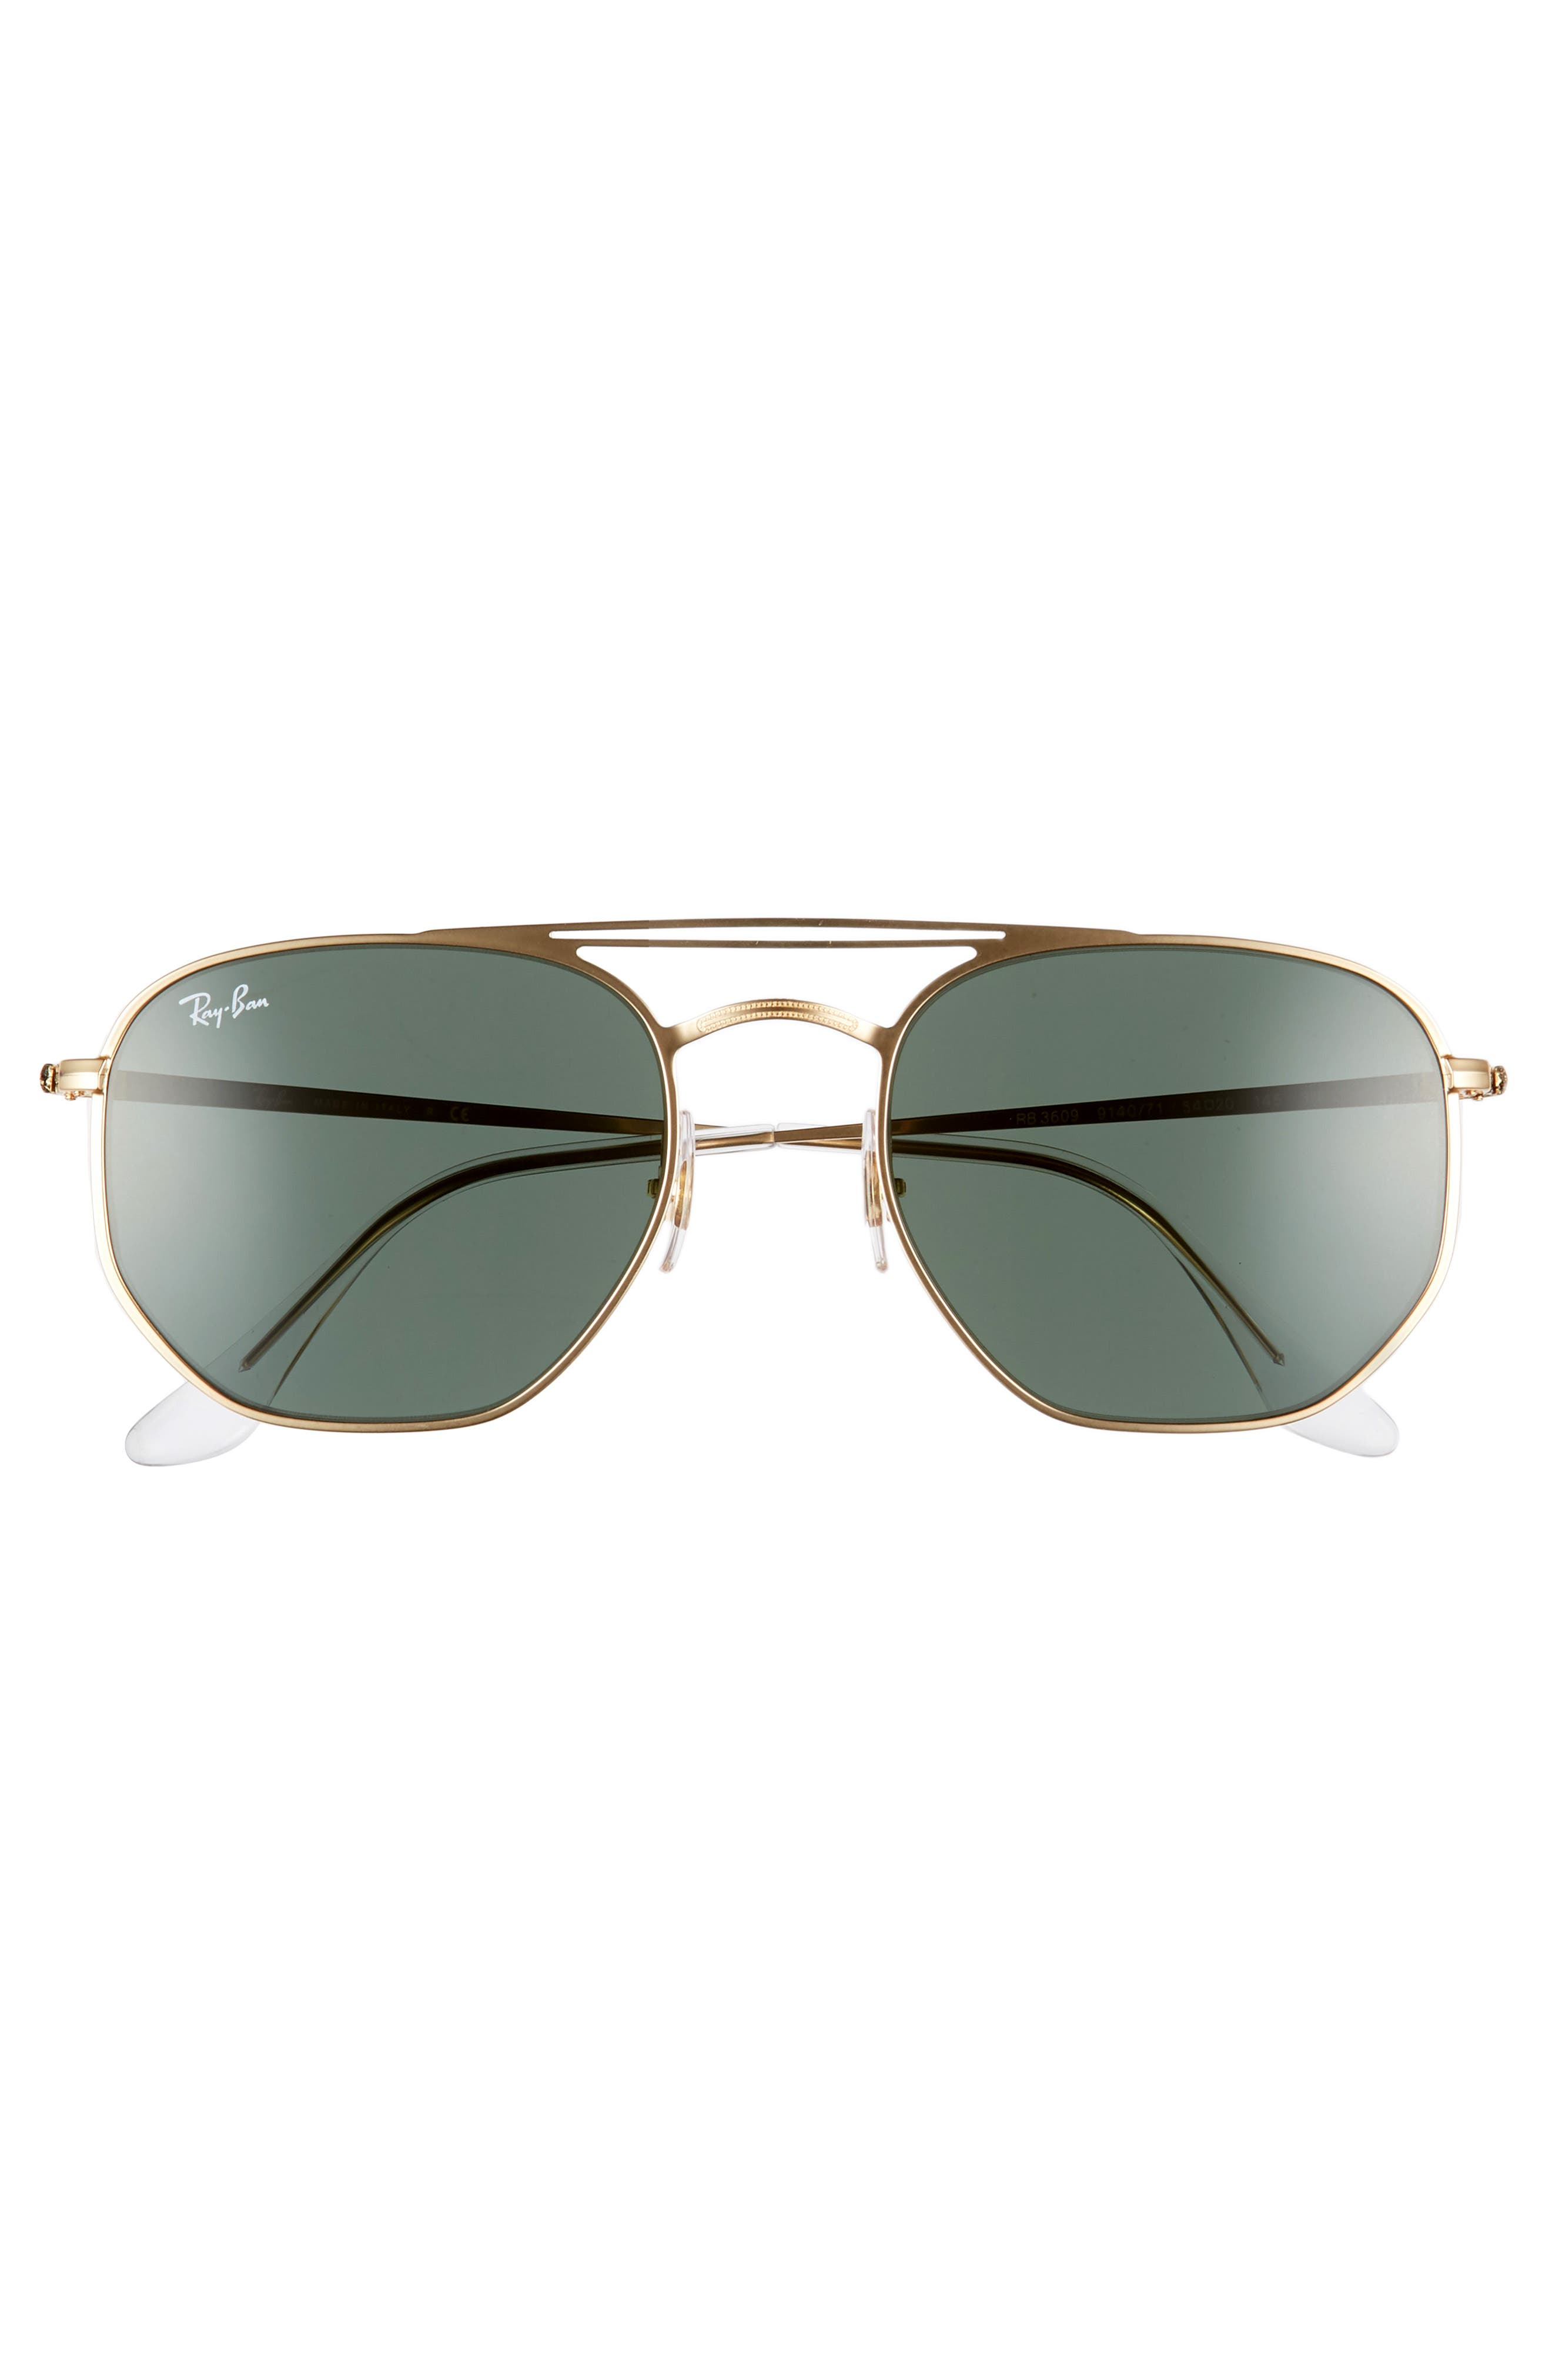 54mm Aviator Sunglasses,                             Alternate thumbnail 3, color,                             GOLD/ GREEN SOLID